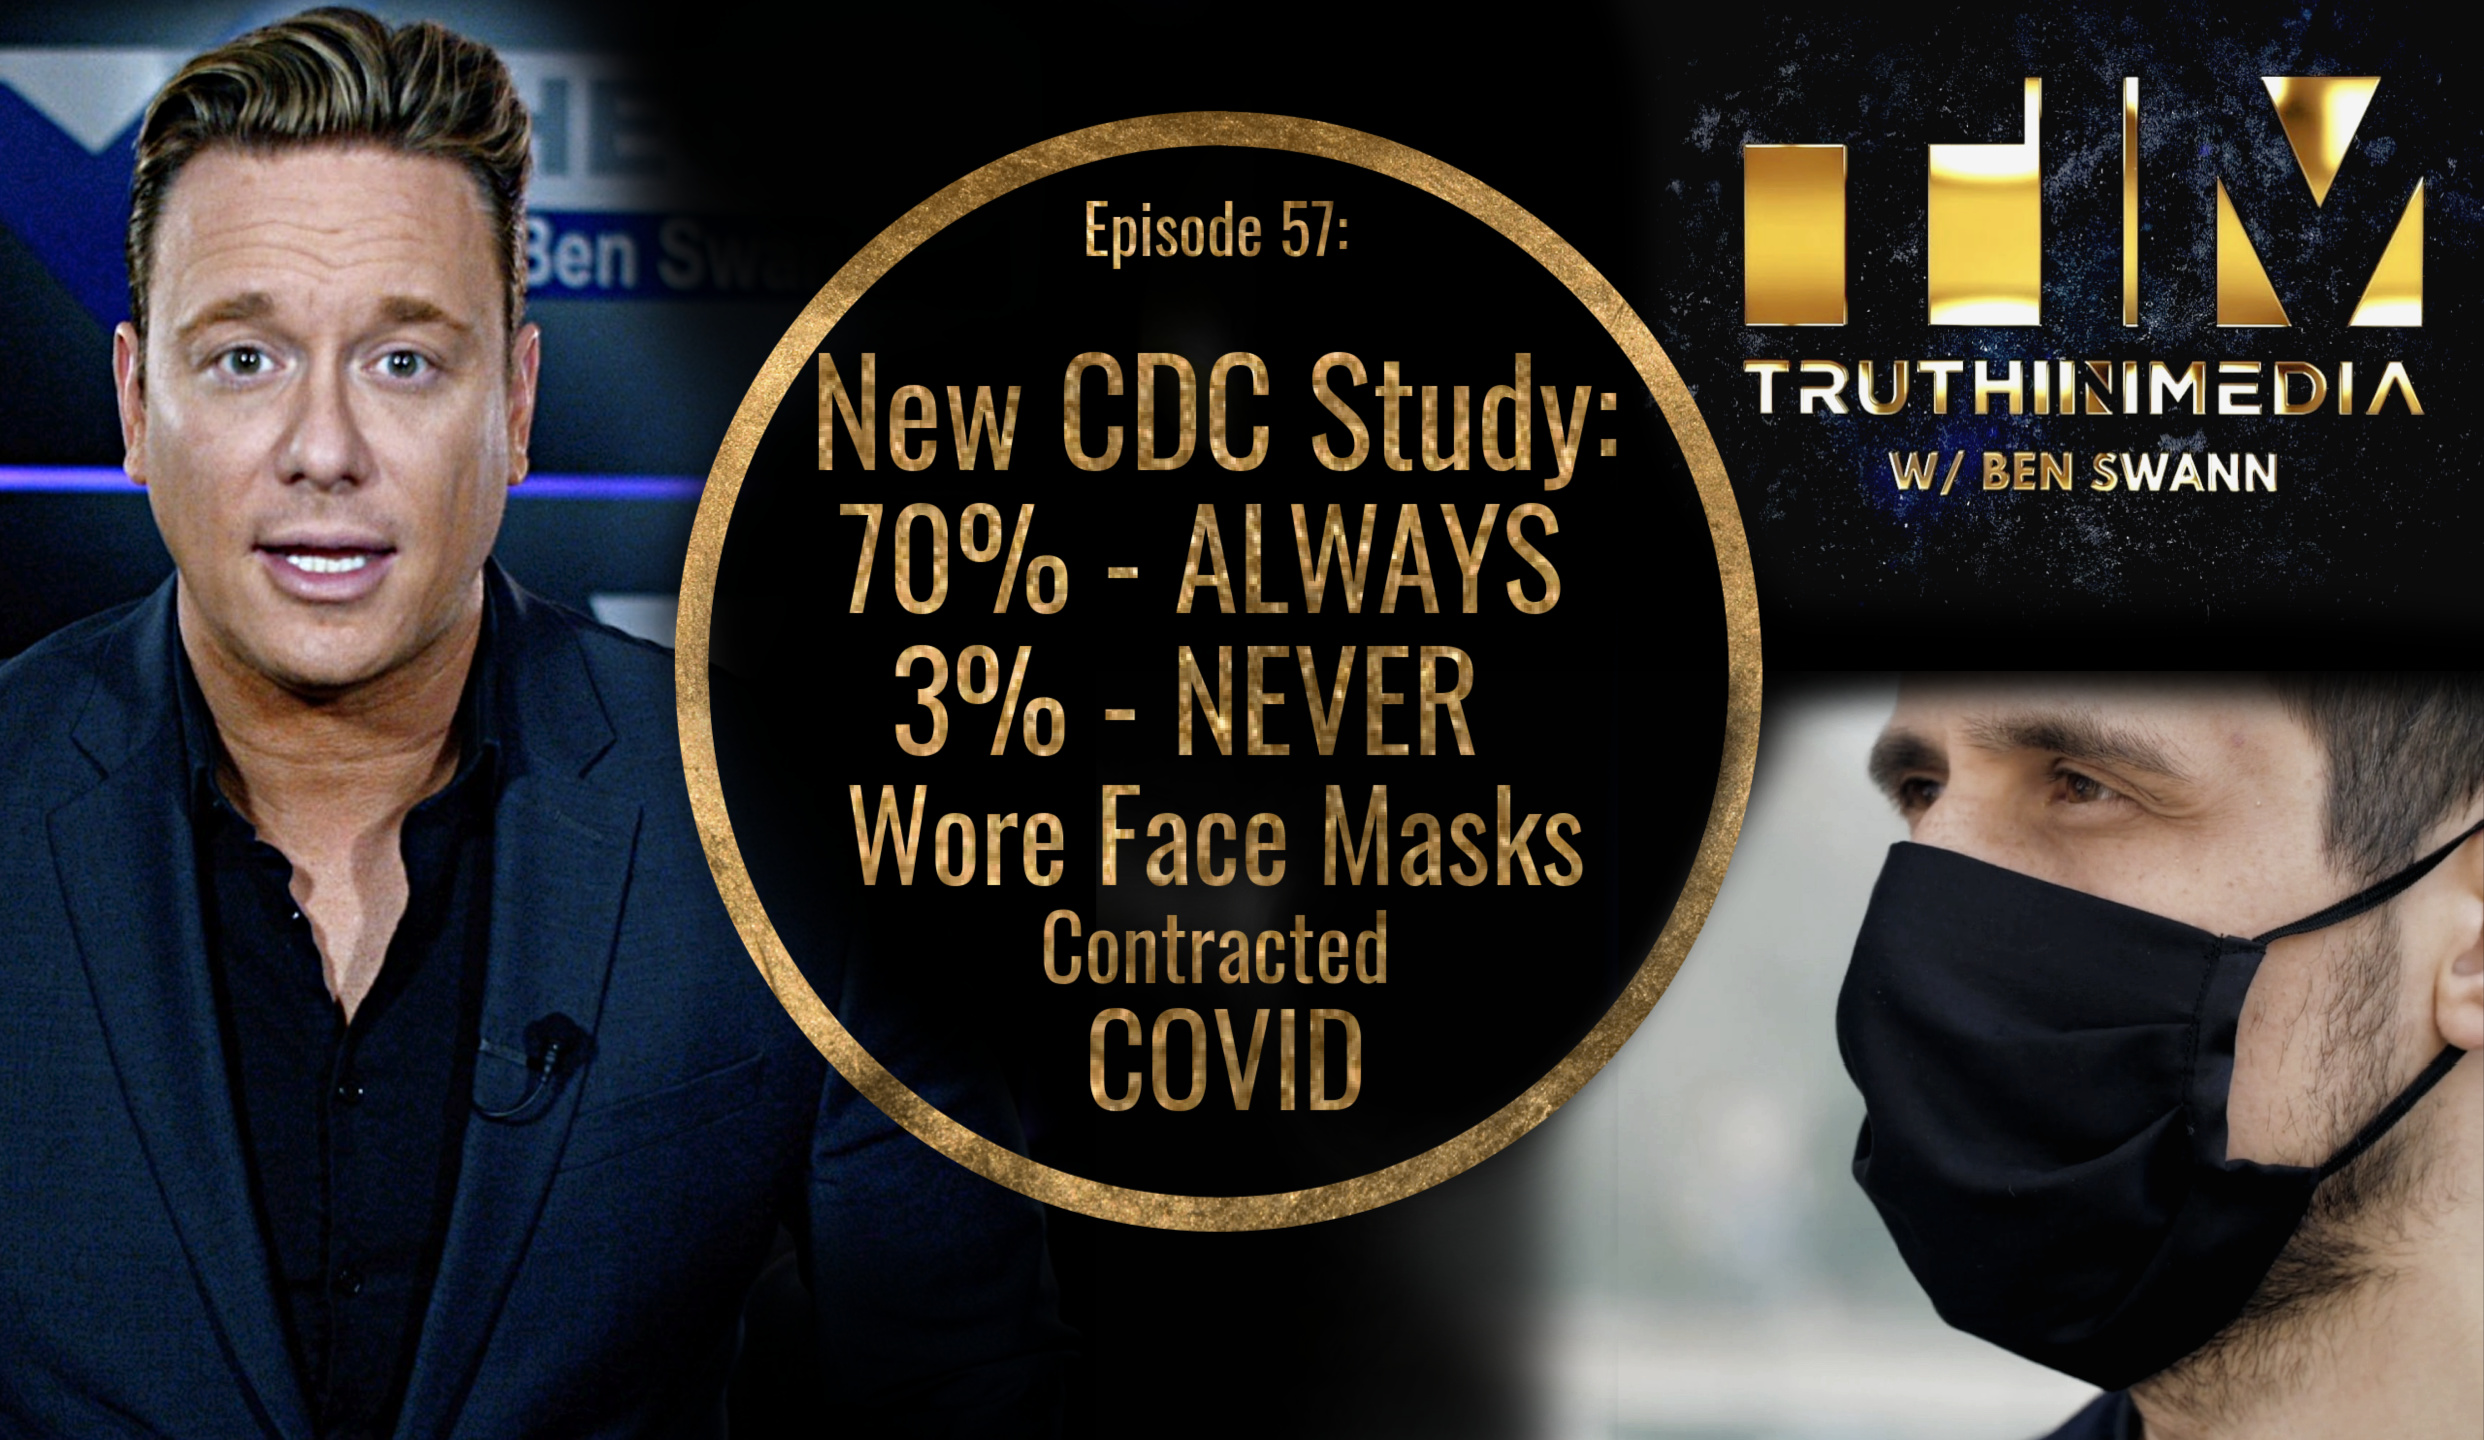 New CDC Study 70% Always 3% Never Wore Face Masks Contracted Covid